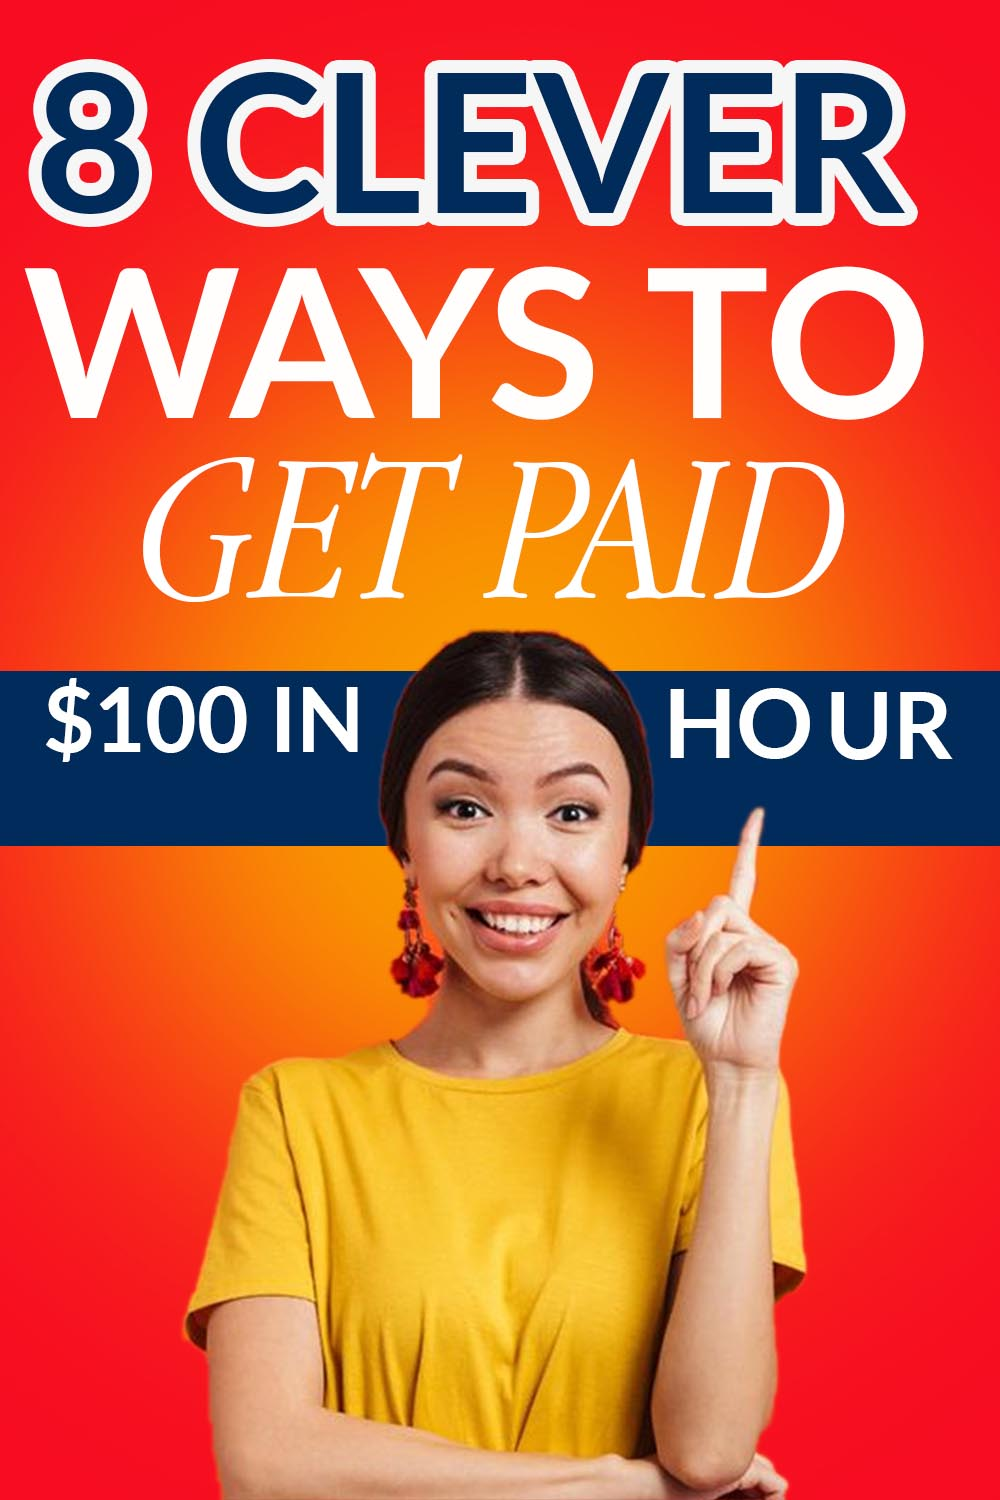 8 Clever Ways To Get Paid